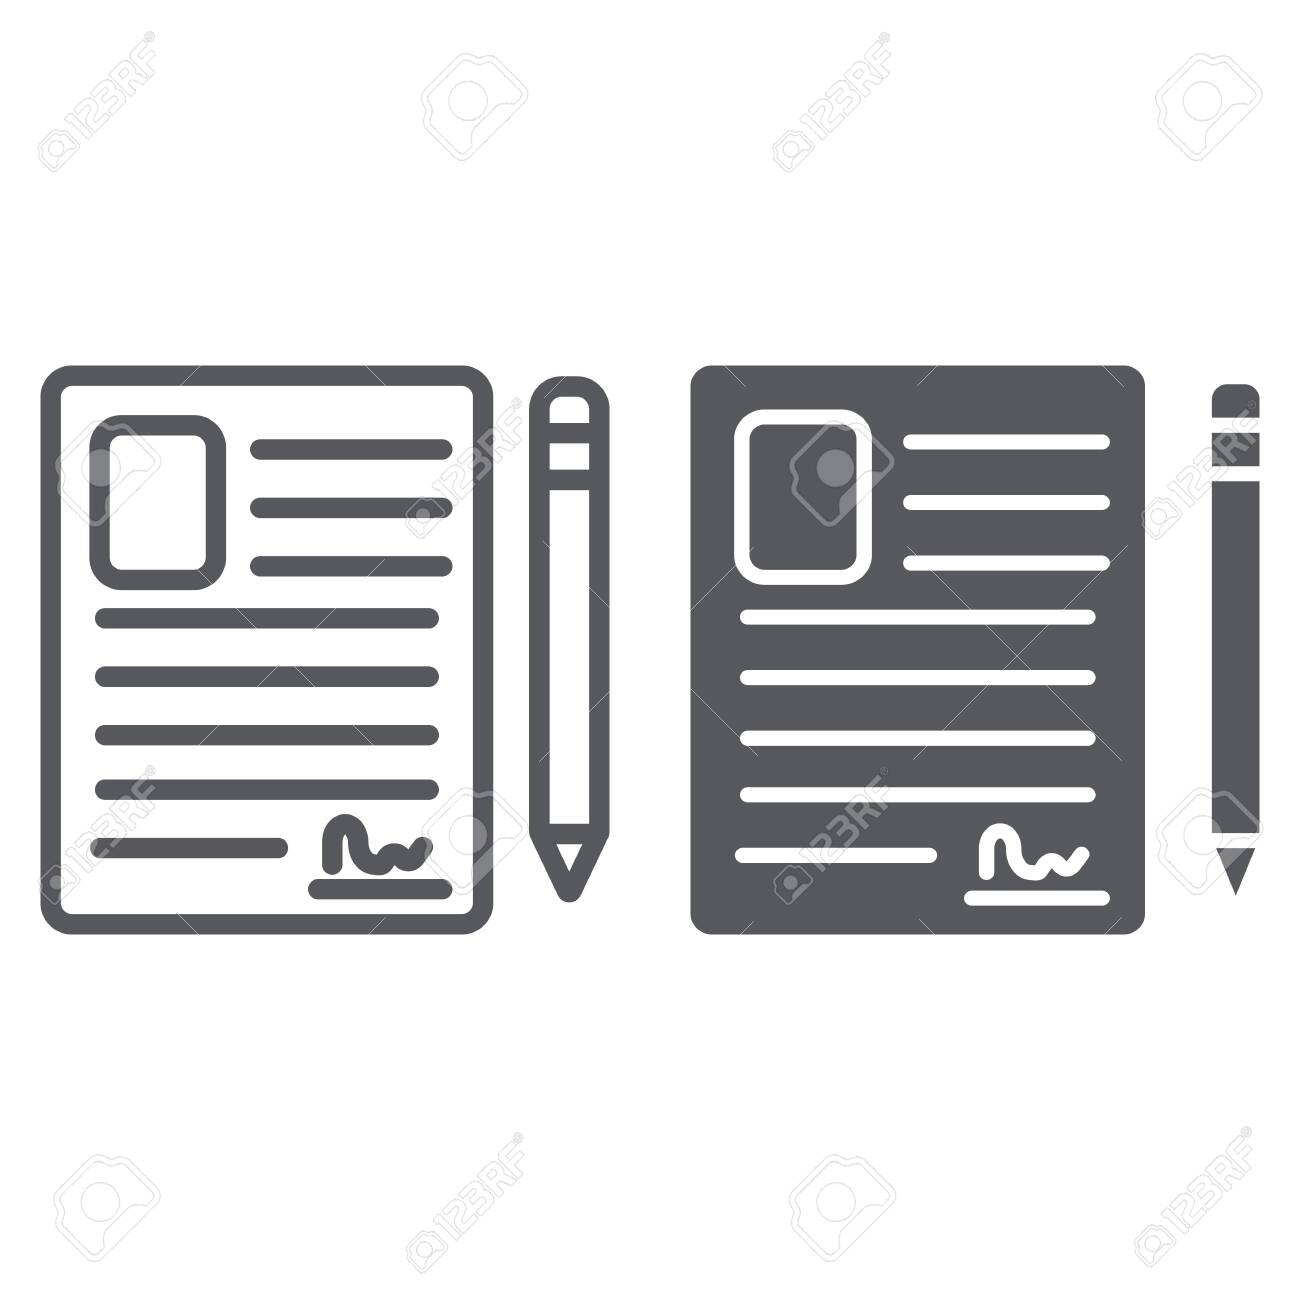 Contact Form Line And Glyph Icon, Blank And Register, Document..